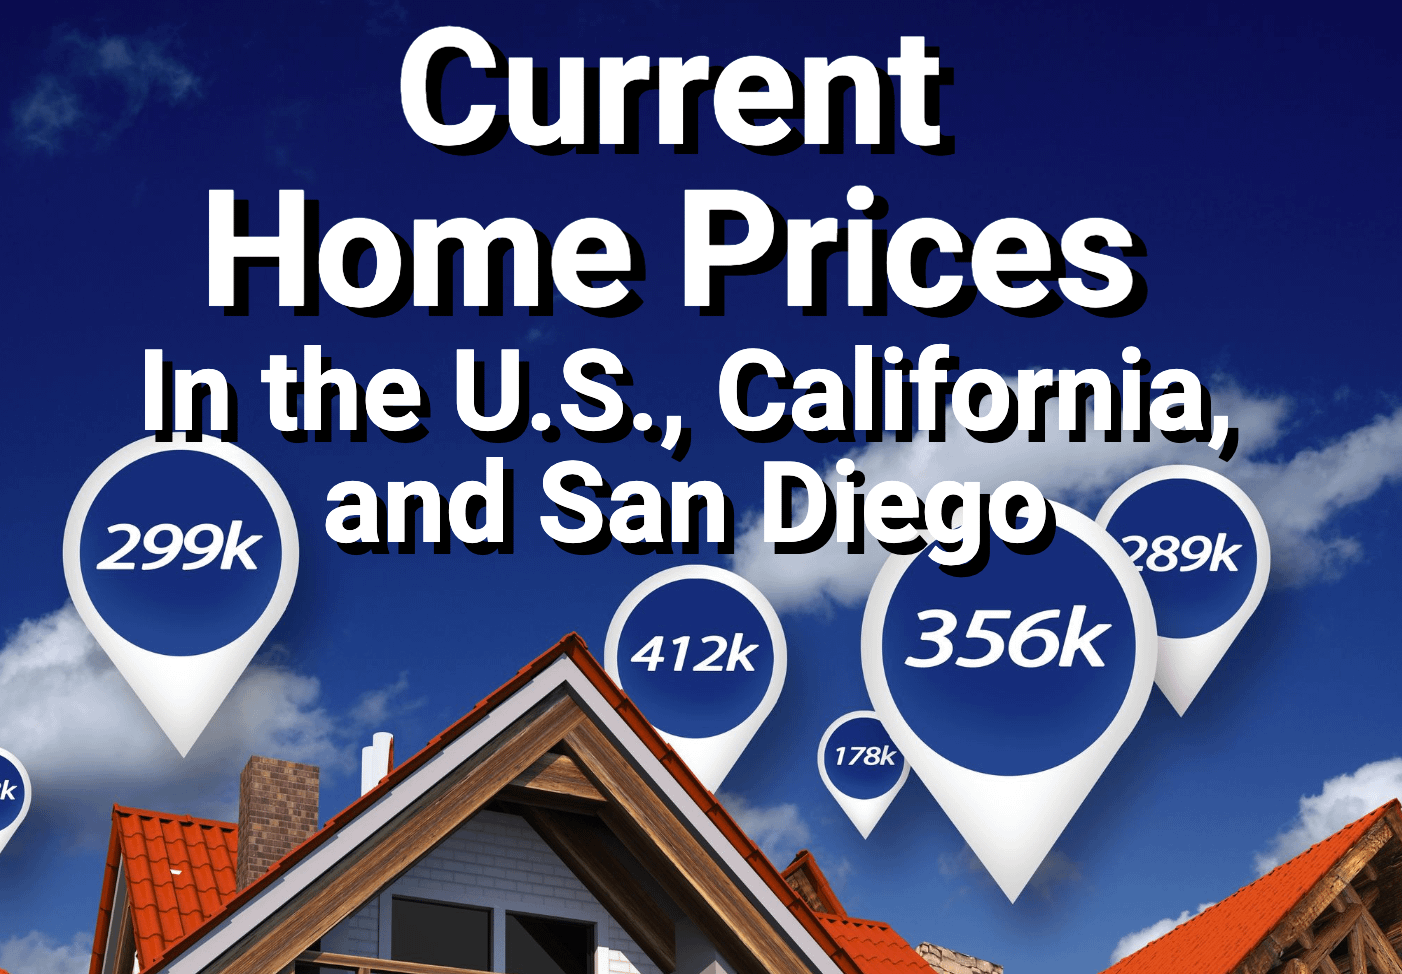 Price pricing concept. Prices above houses